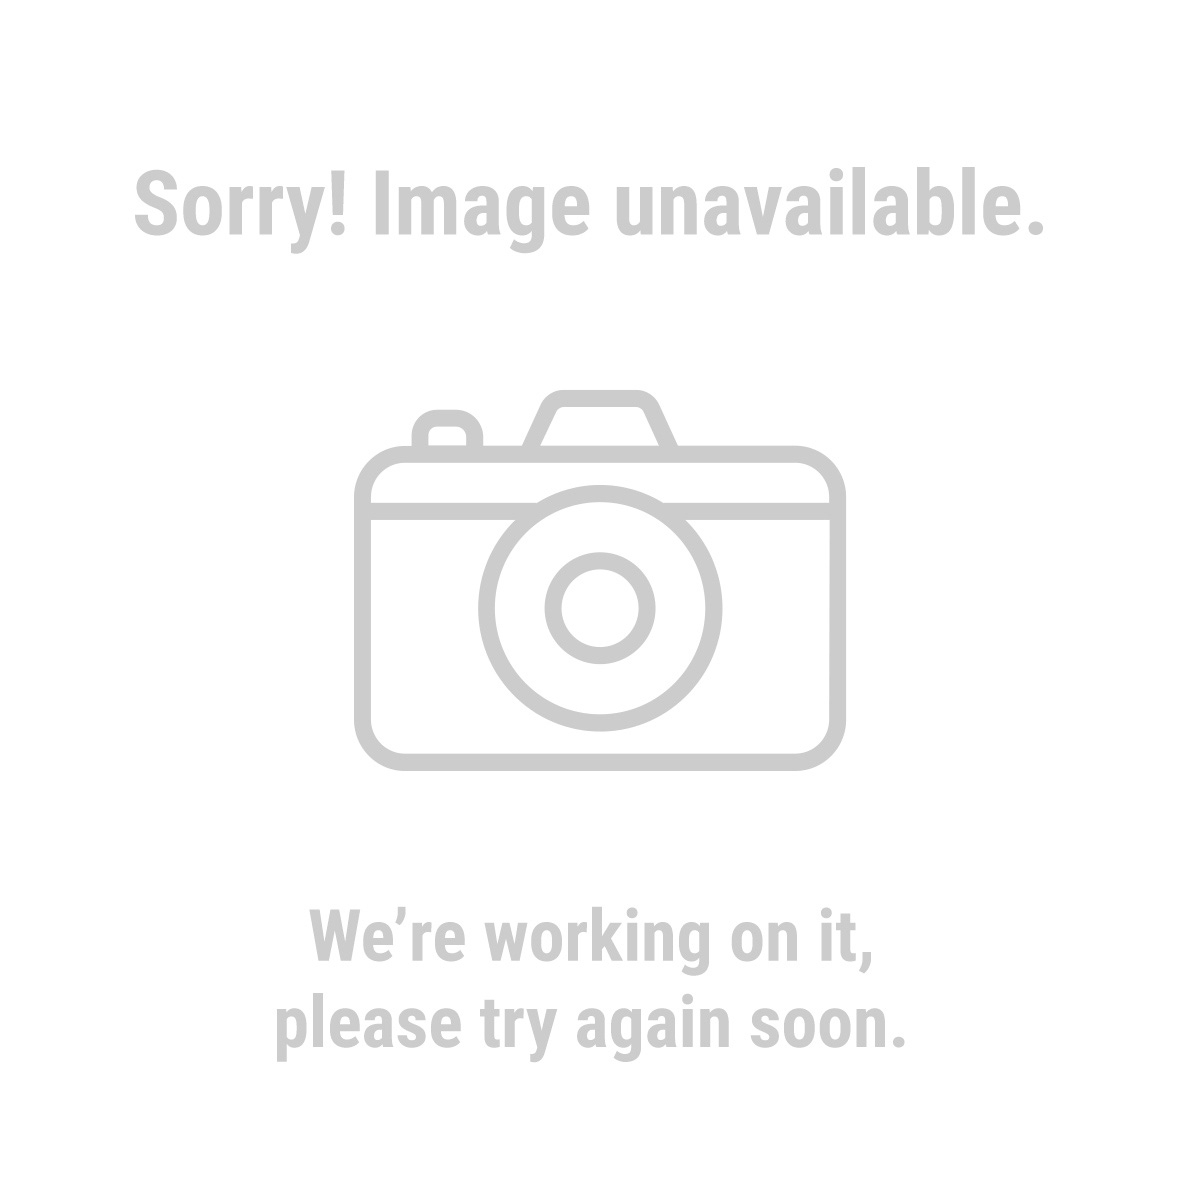 Central Pneumatic 69703 2-in-1 Flooring Nailer/Stapler